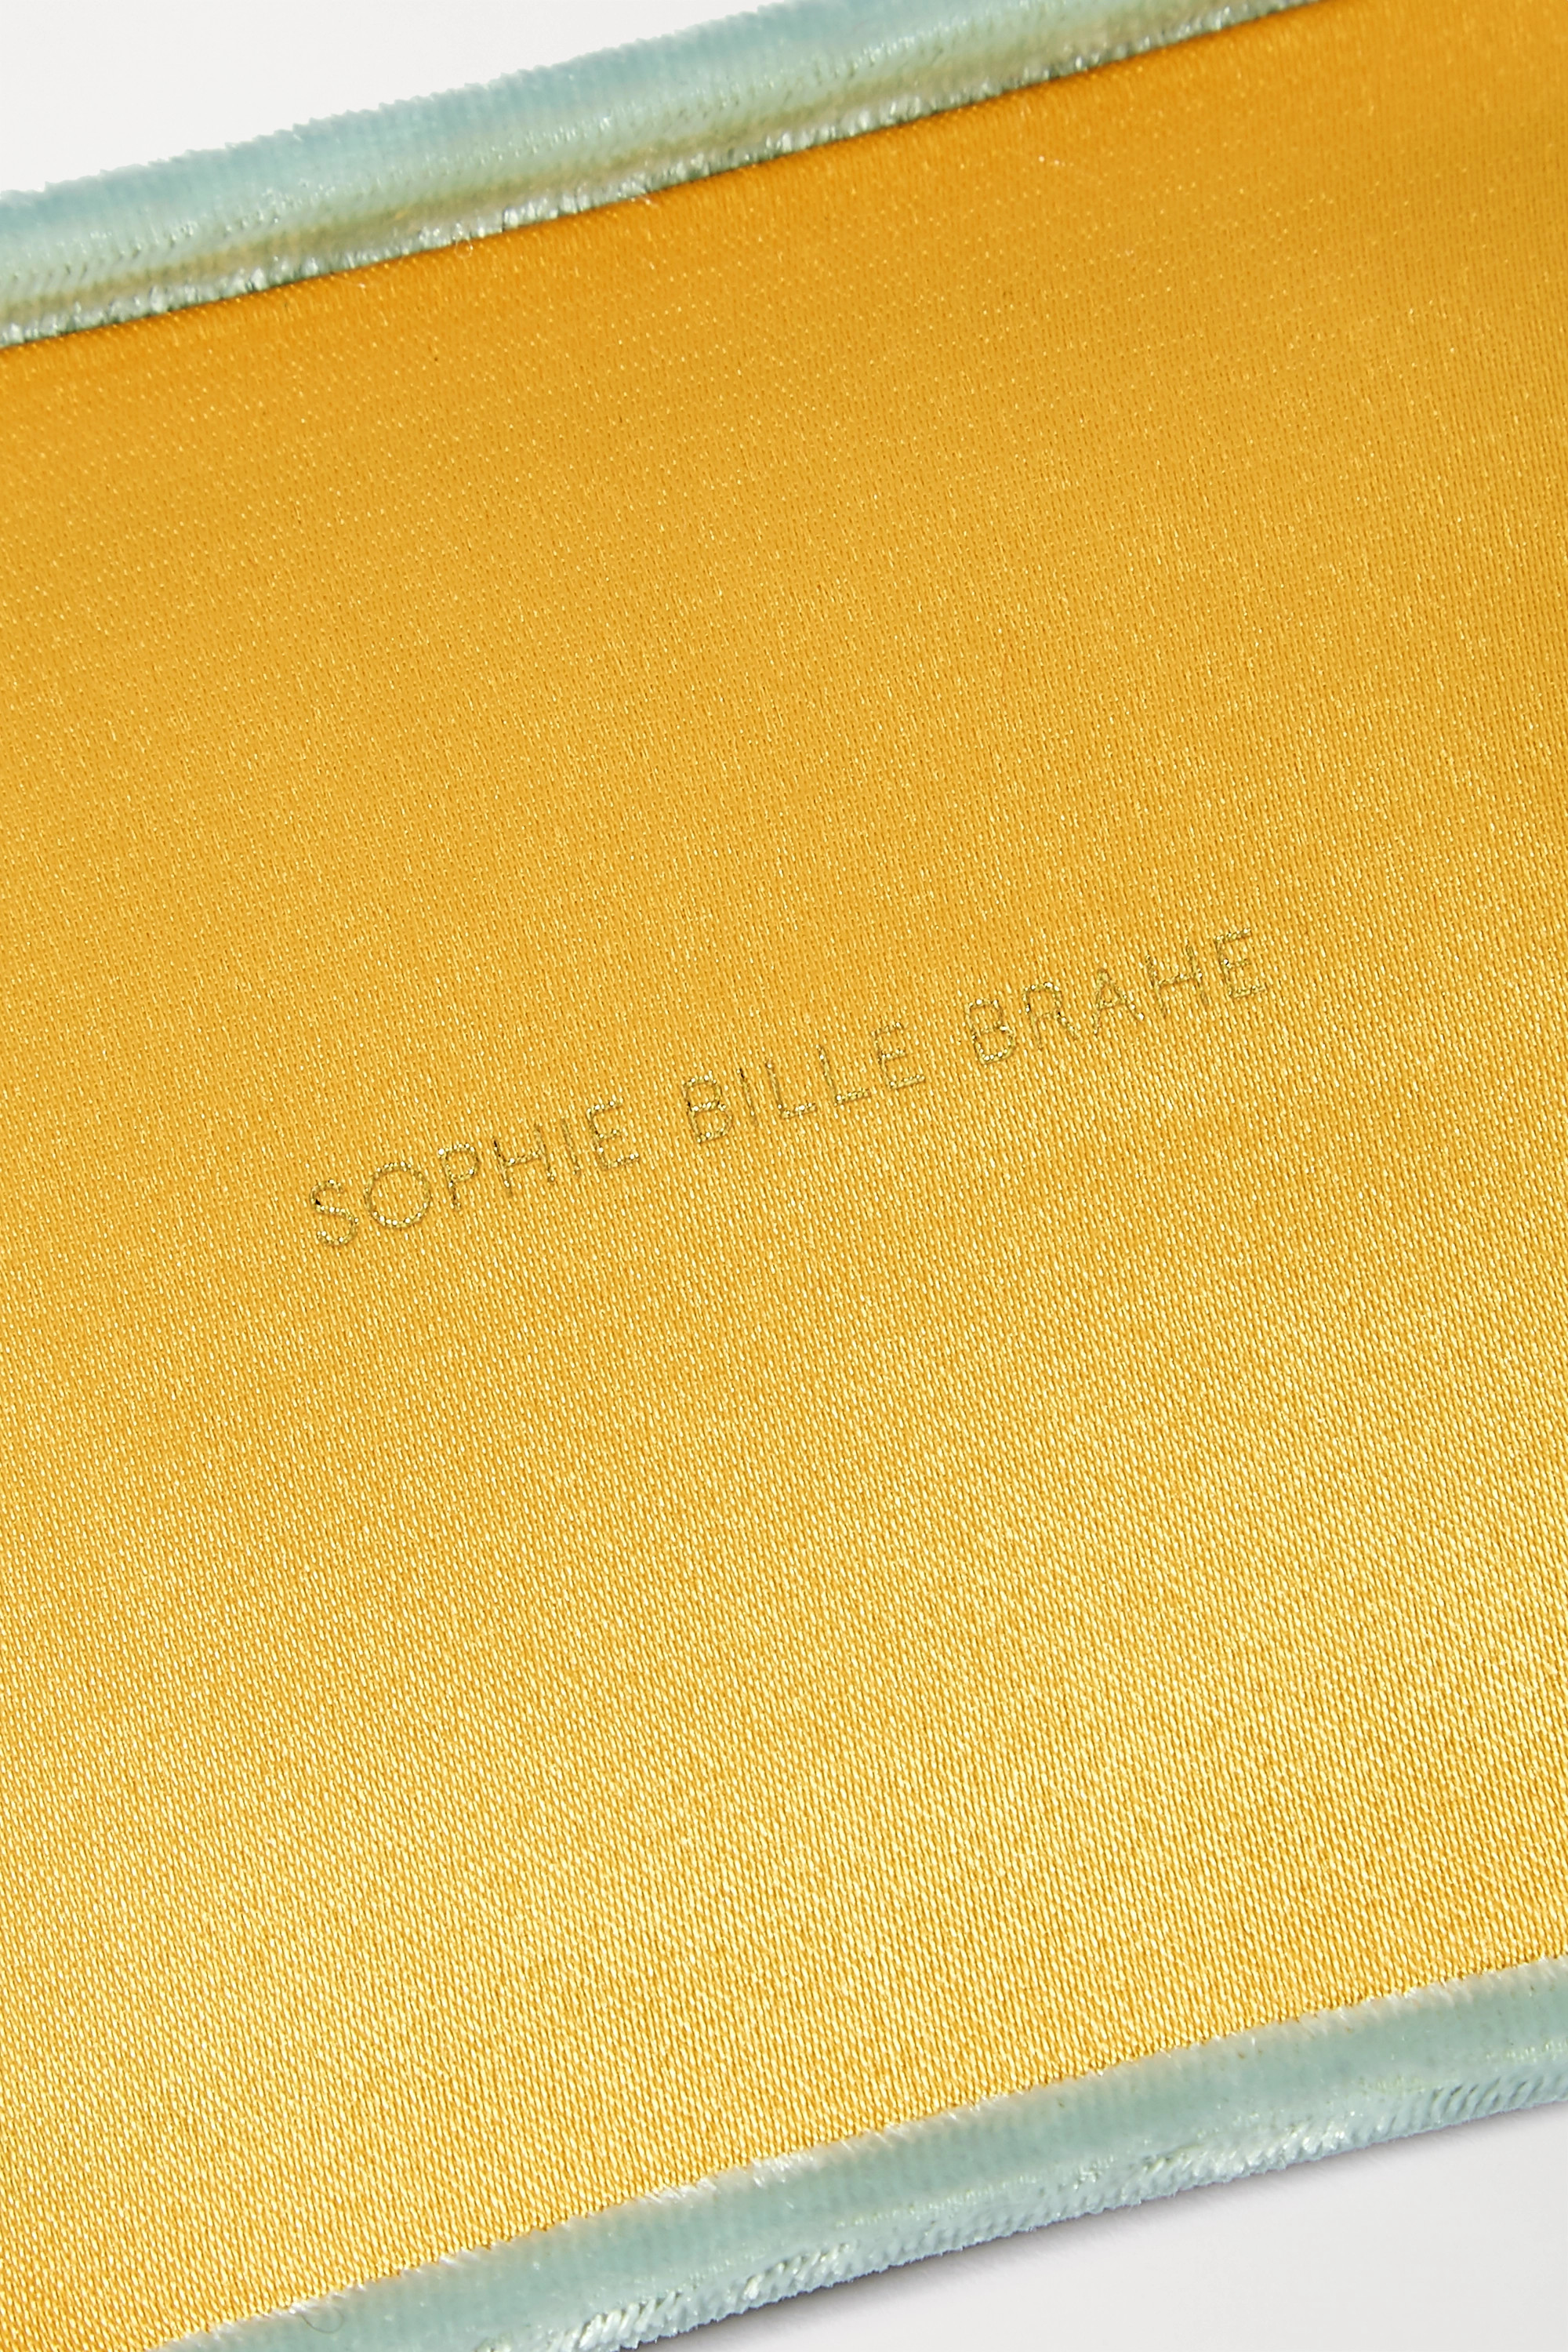 Sophie Bille Brahe Velvet jewelry box